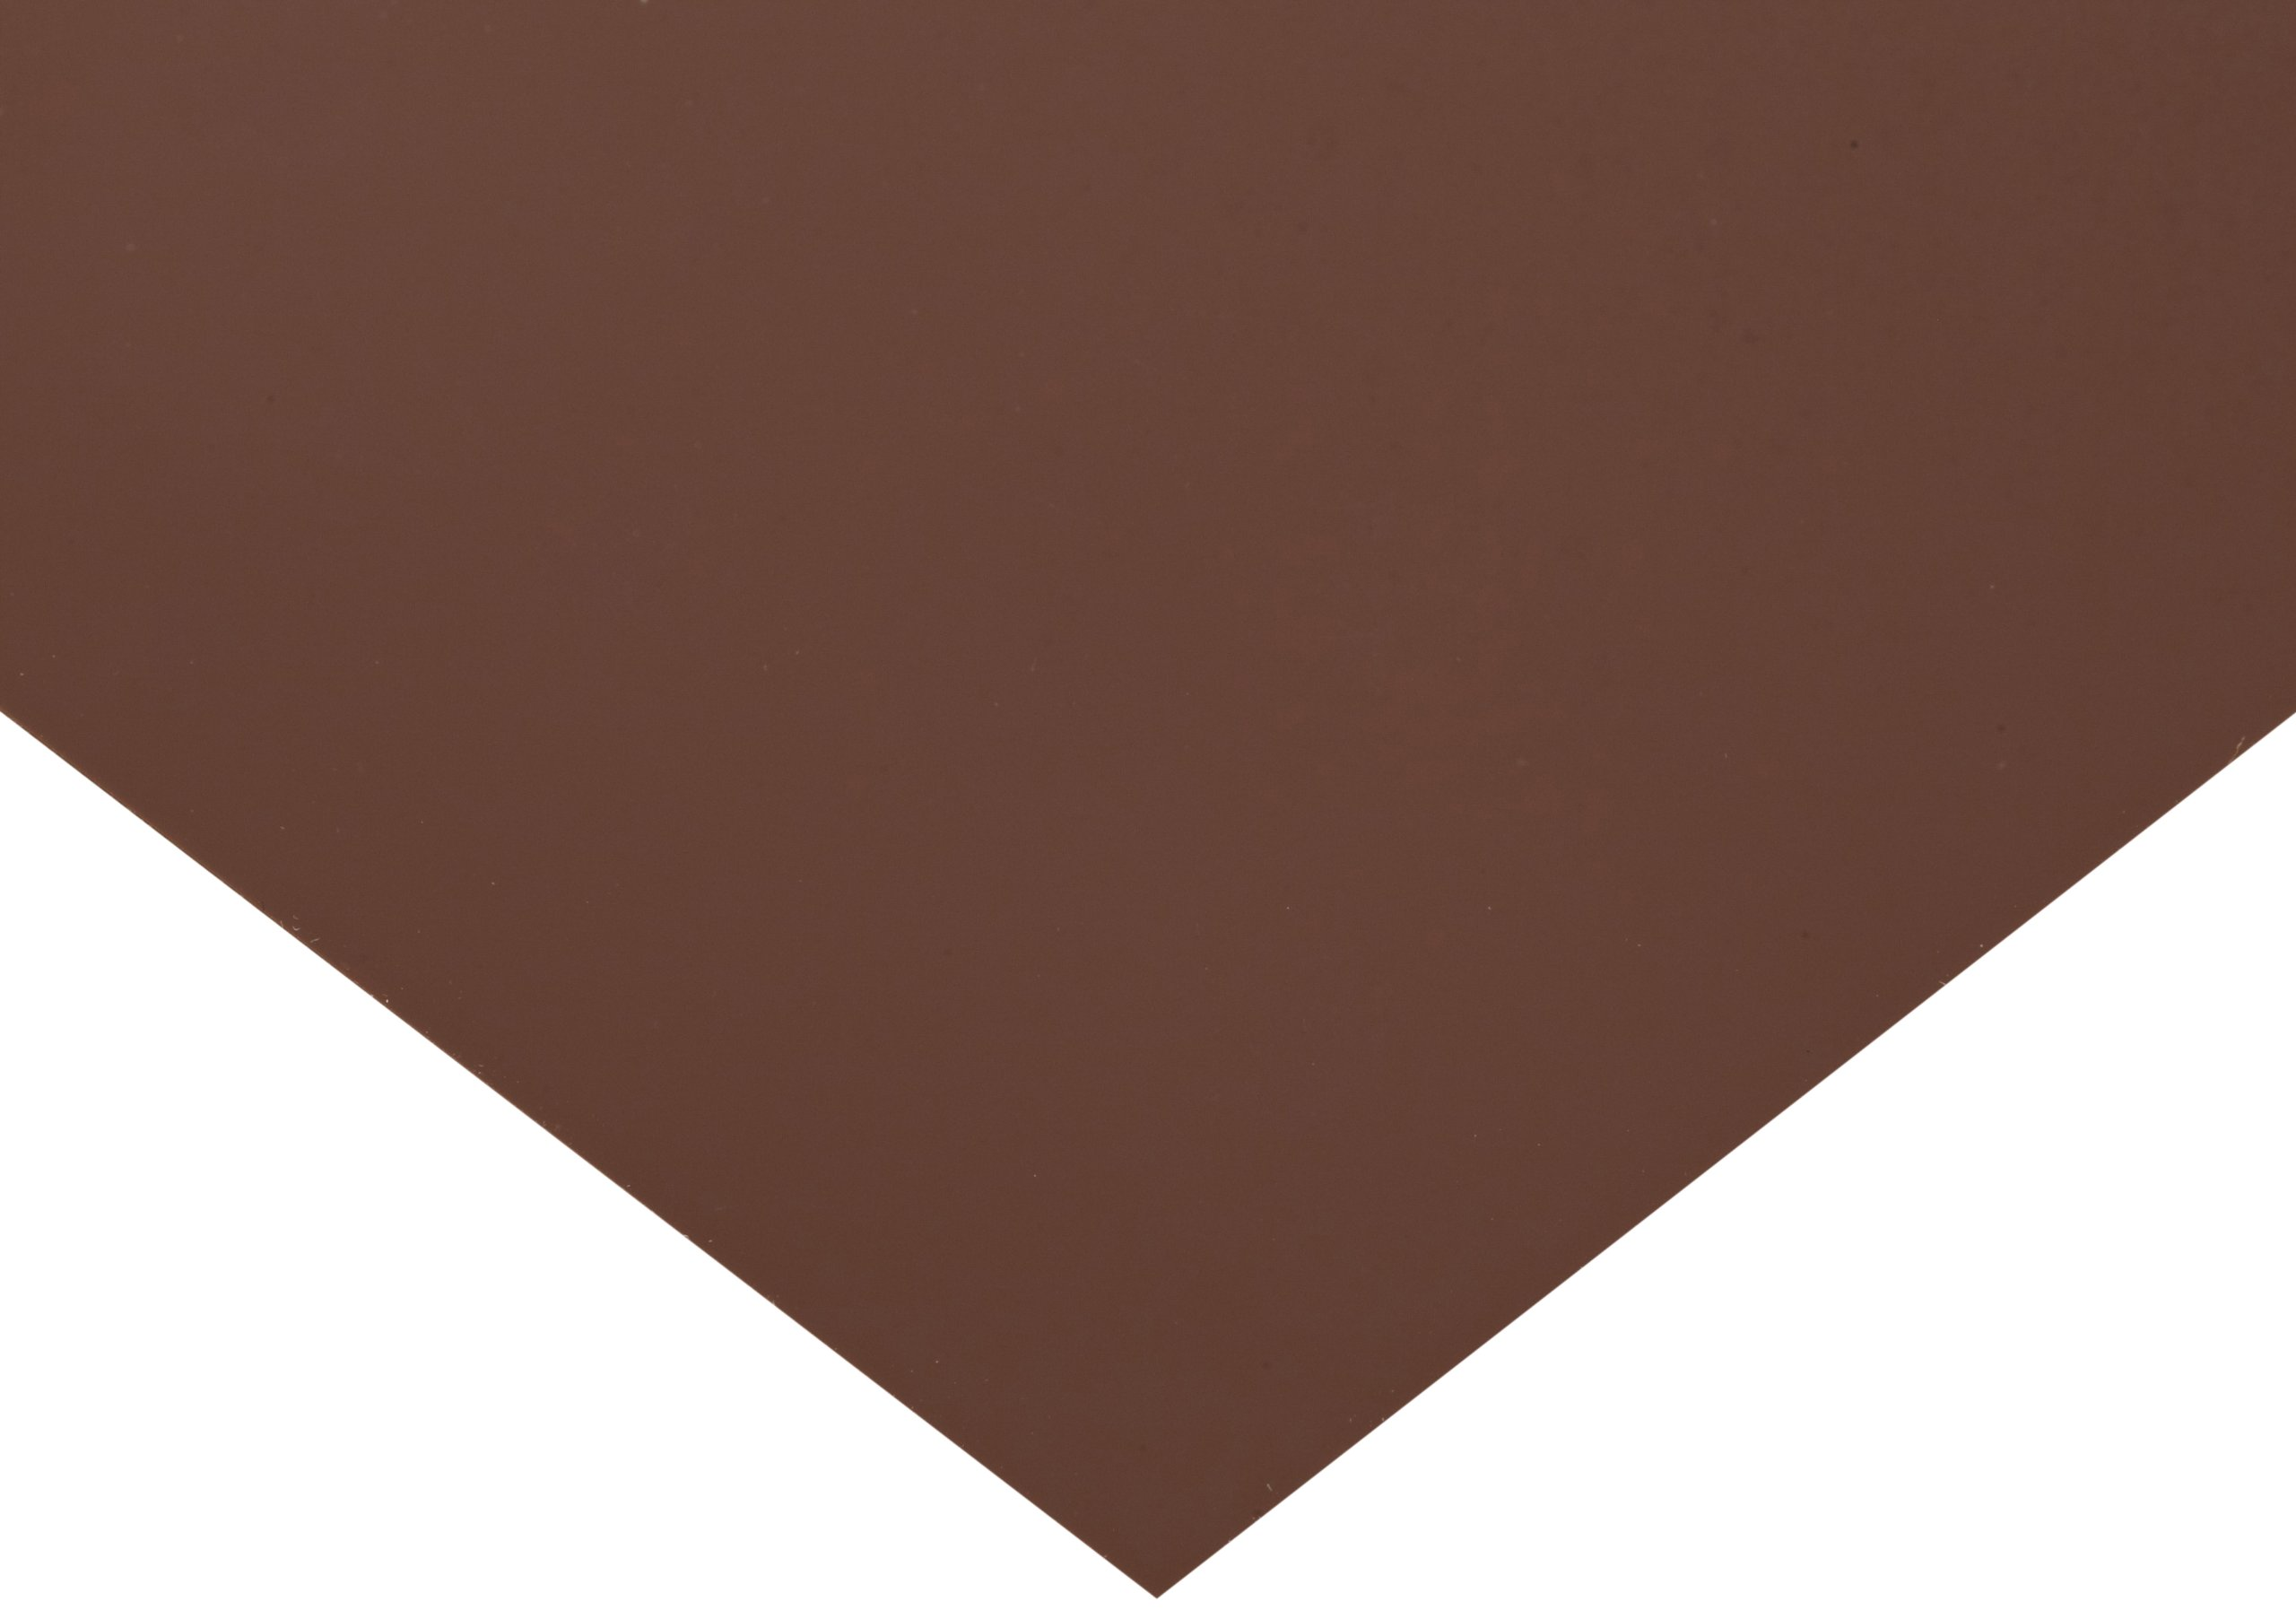 PVC (Polyvinyl Chloride) Shim Stock, Flat Sheet, Brown, 0.010'' Thickness, 5'' Width, 20'' Length (Pack of 10) by Small Parts